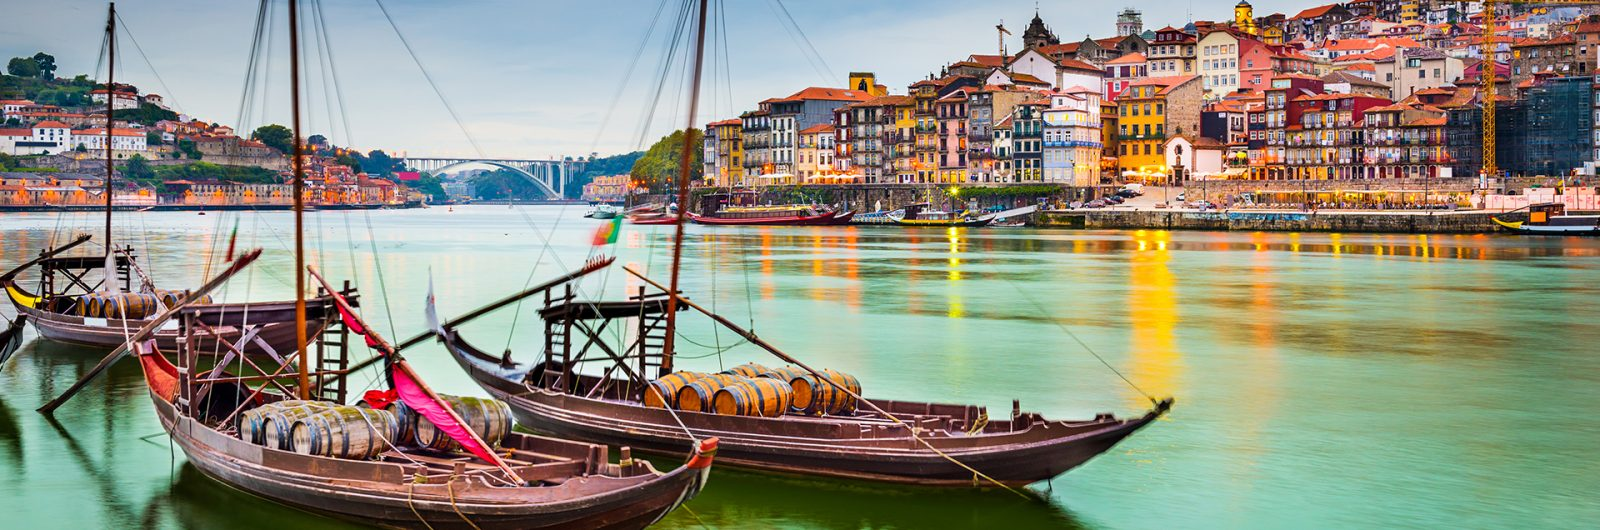 Spain & Portugal Douro Cruise